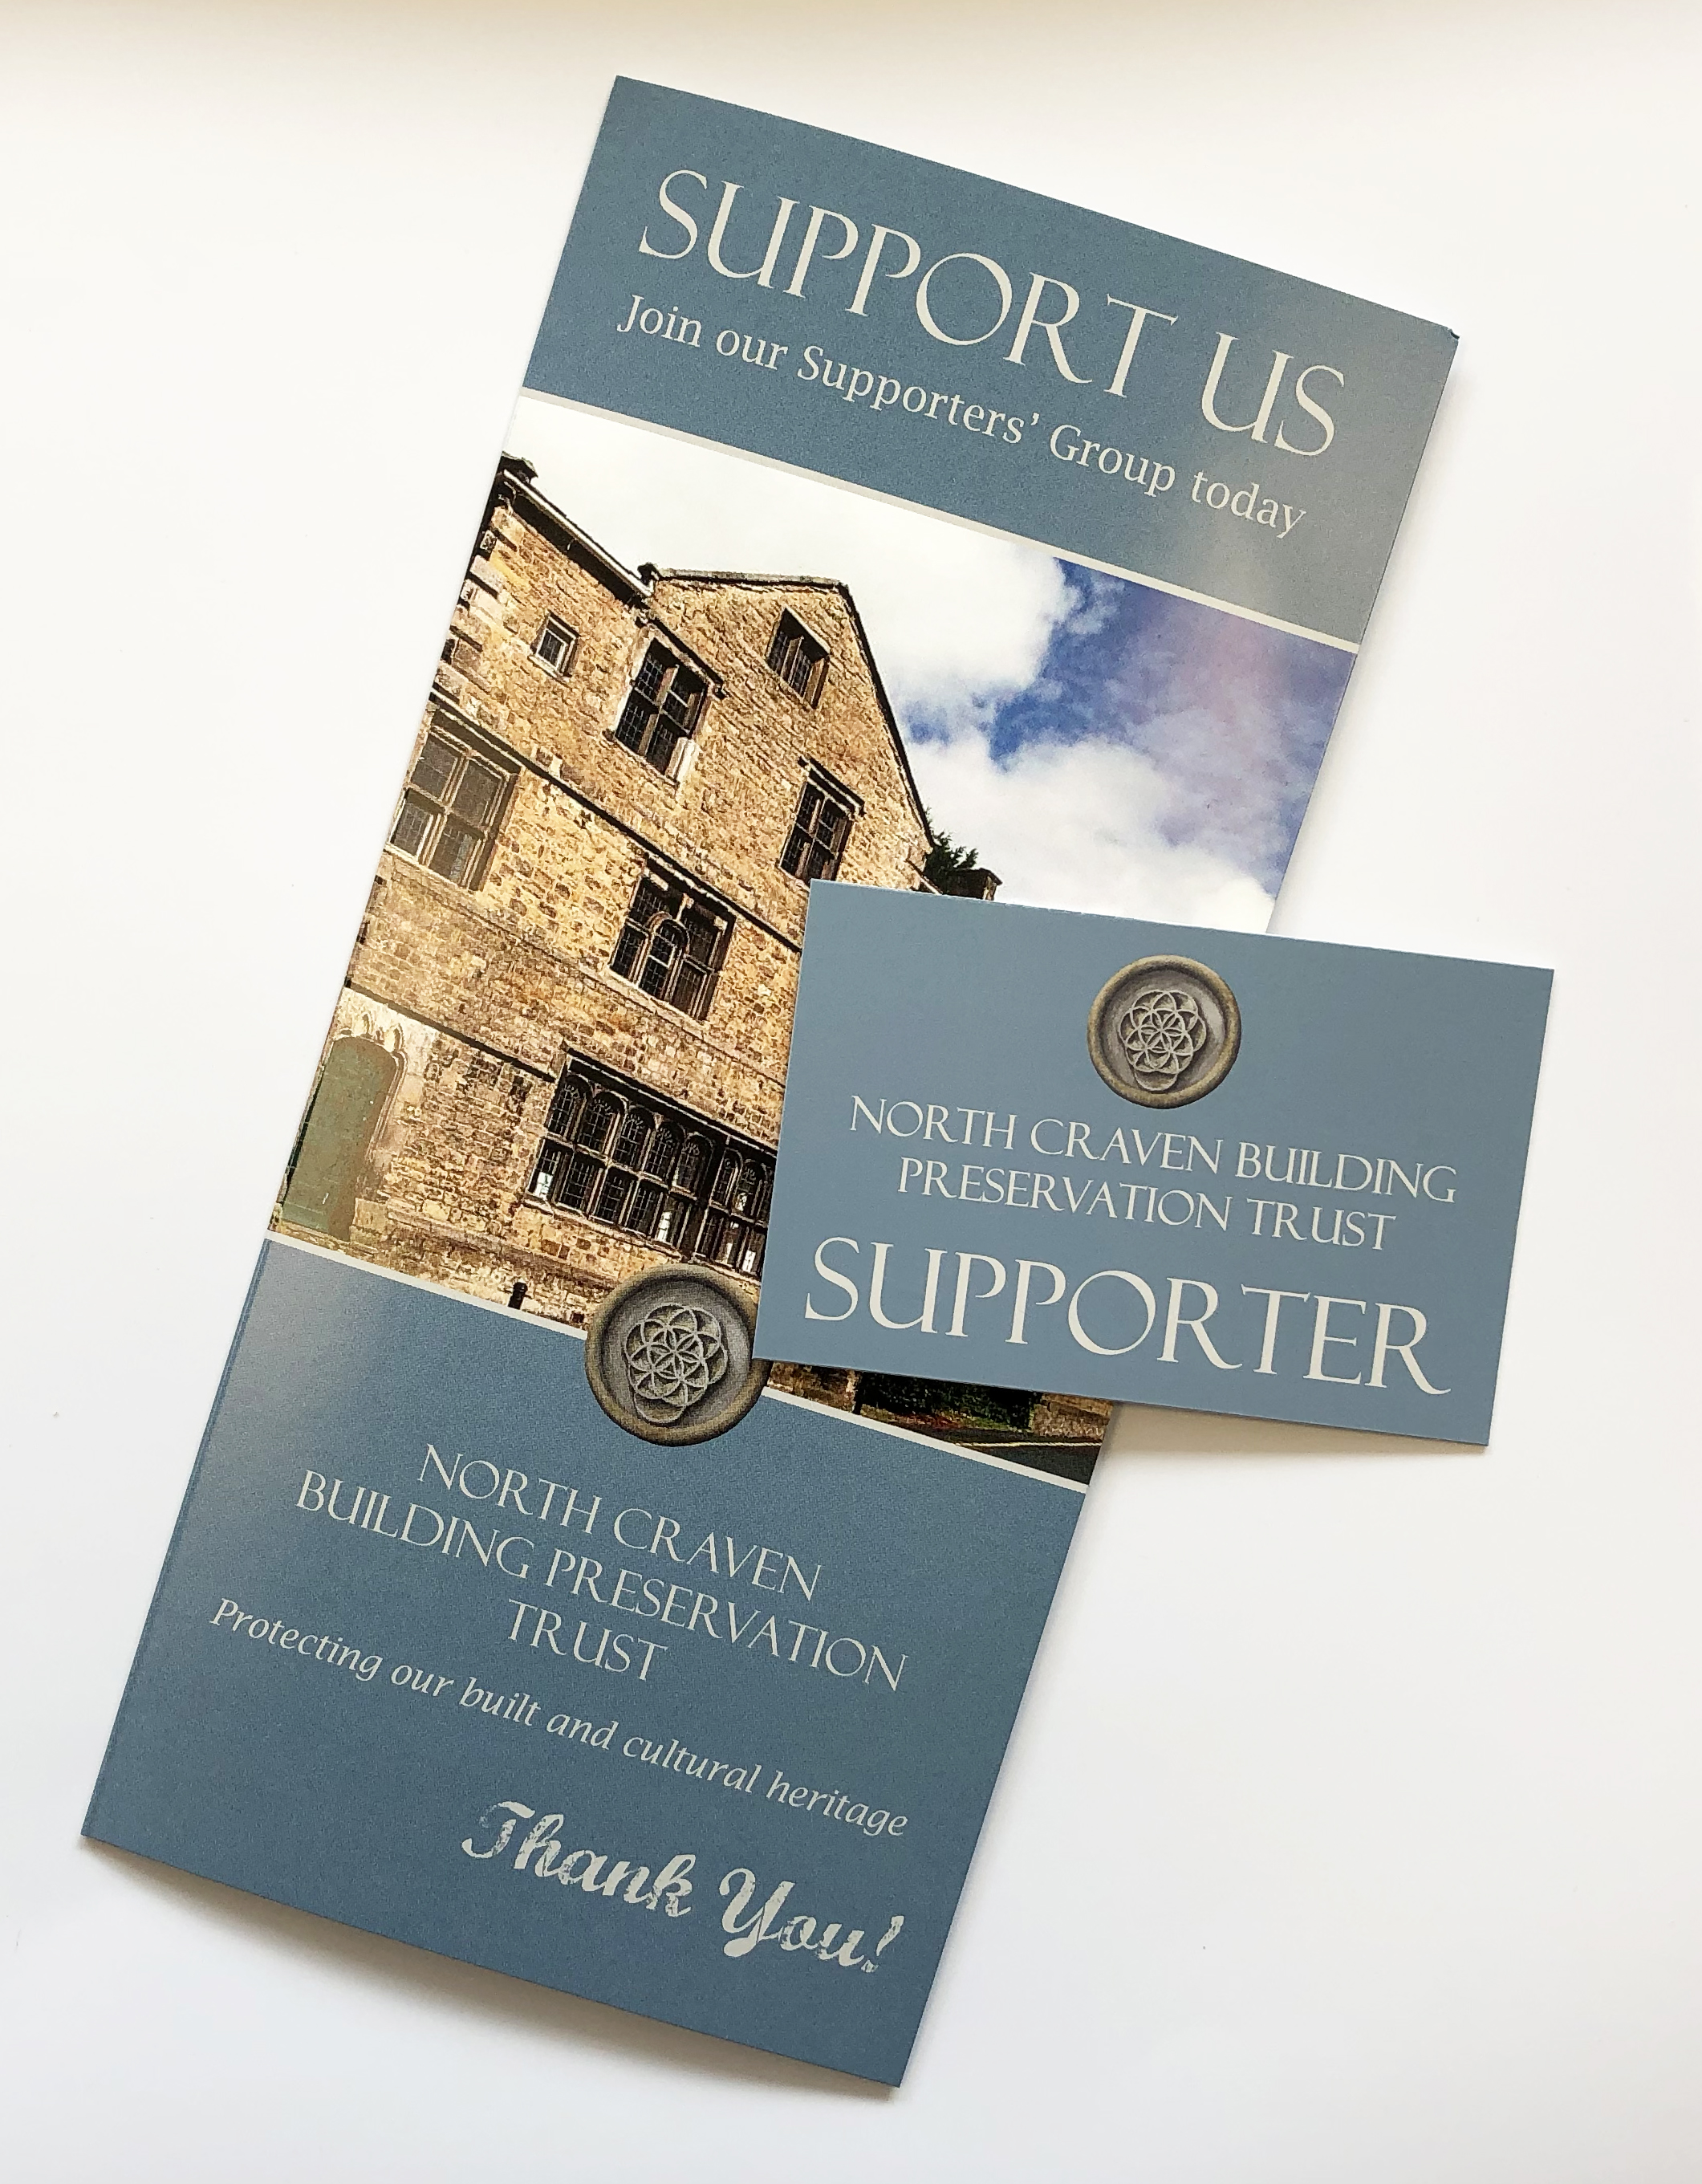 NCHT Supports Cards & Leaflet